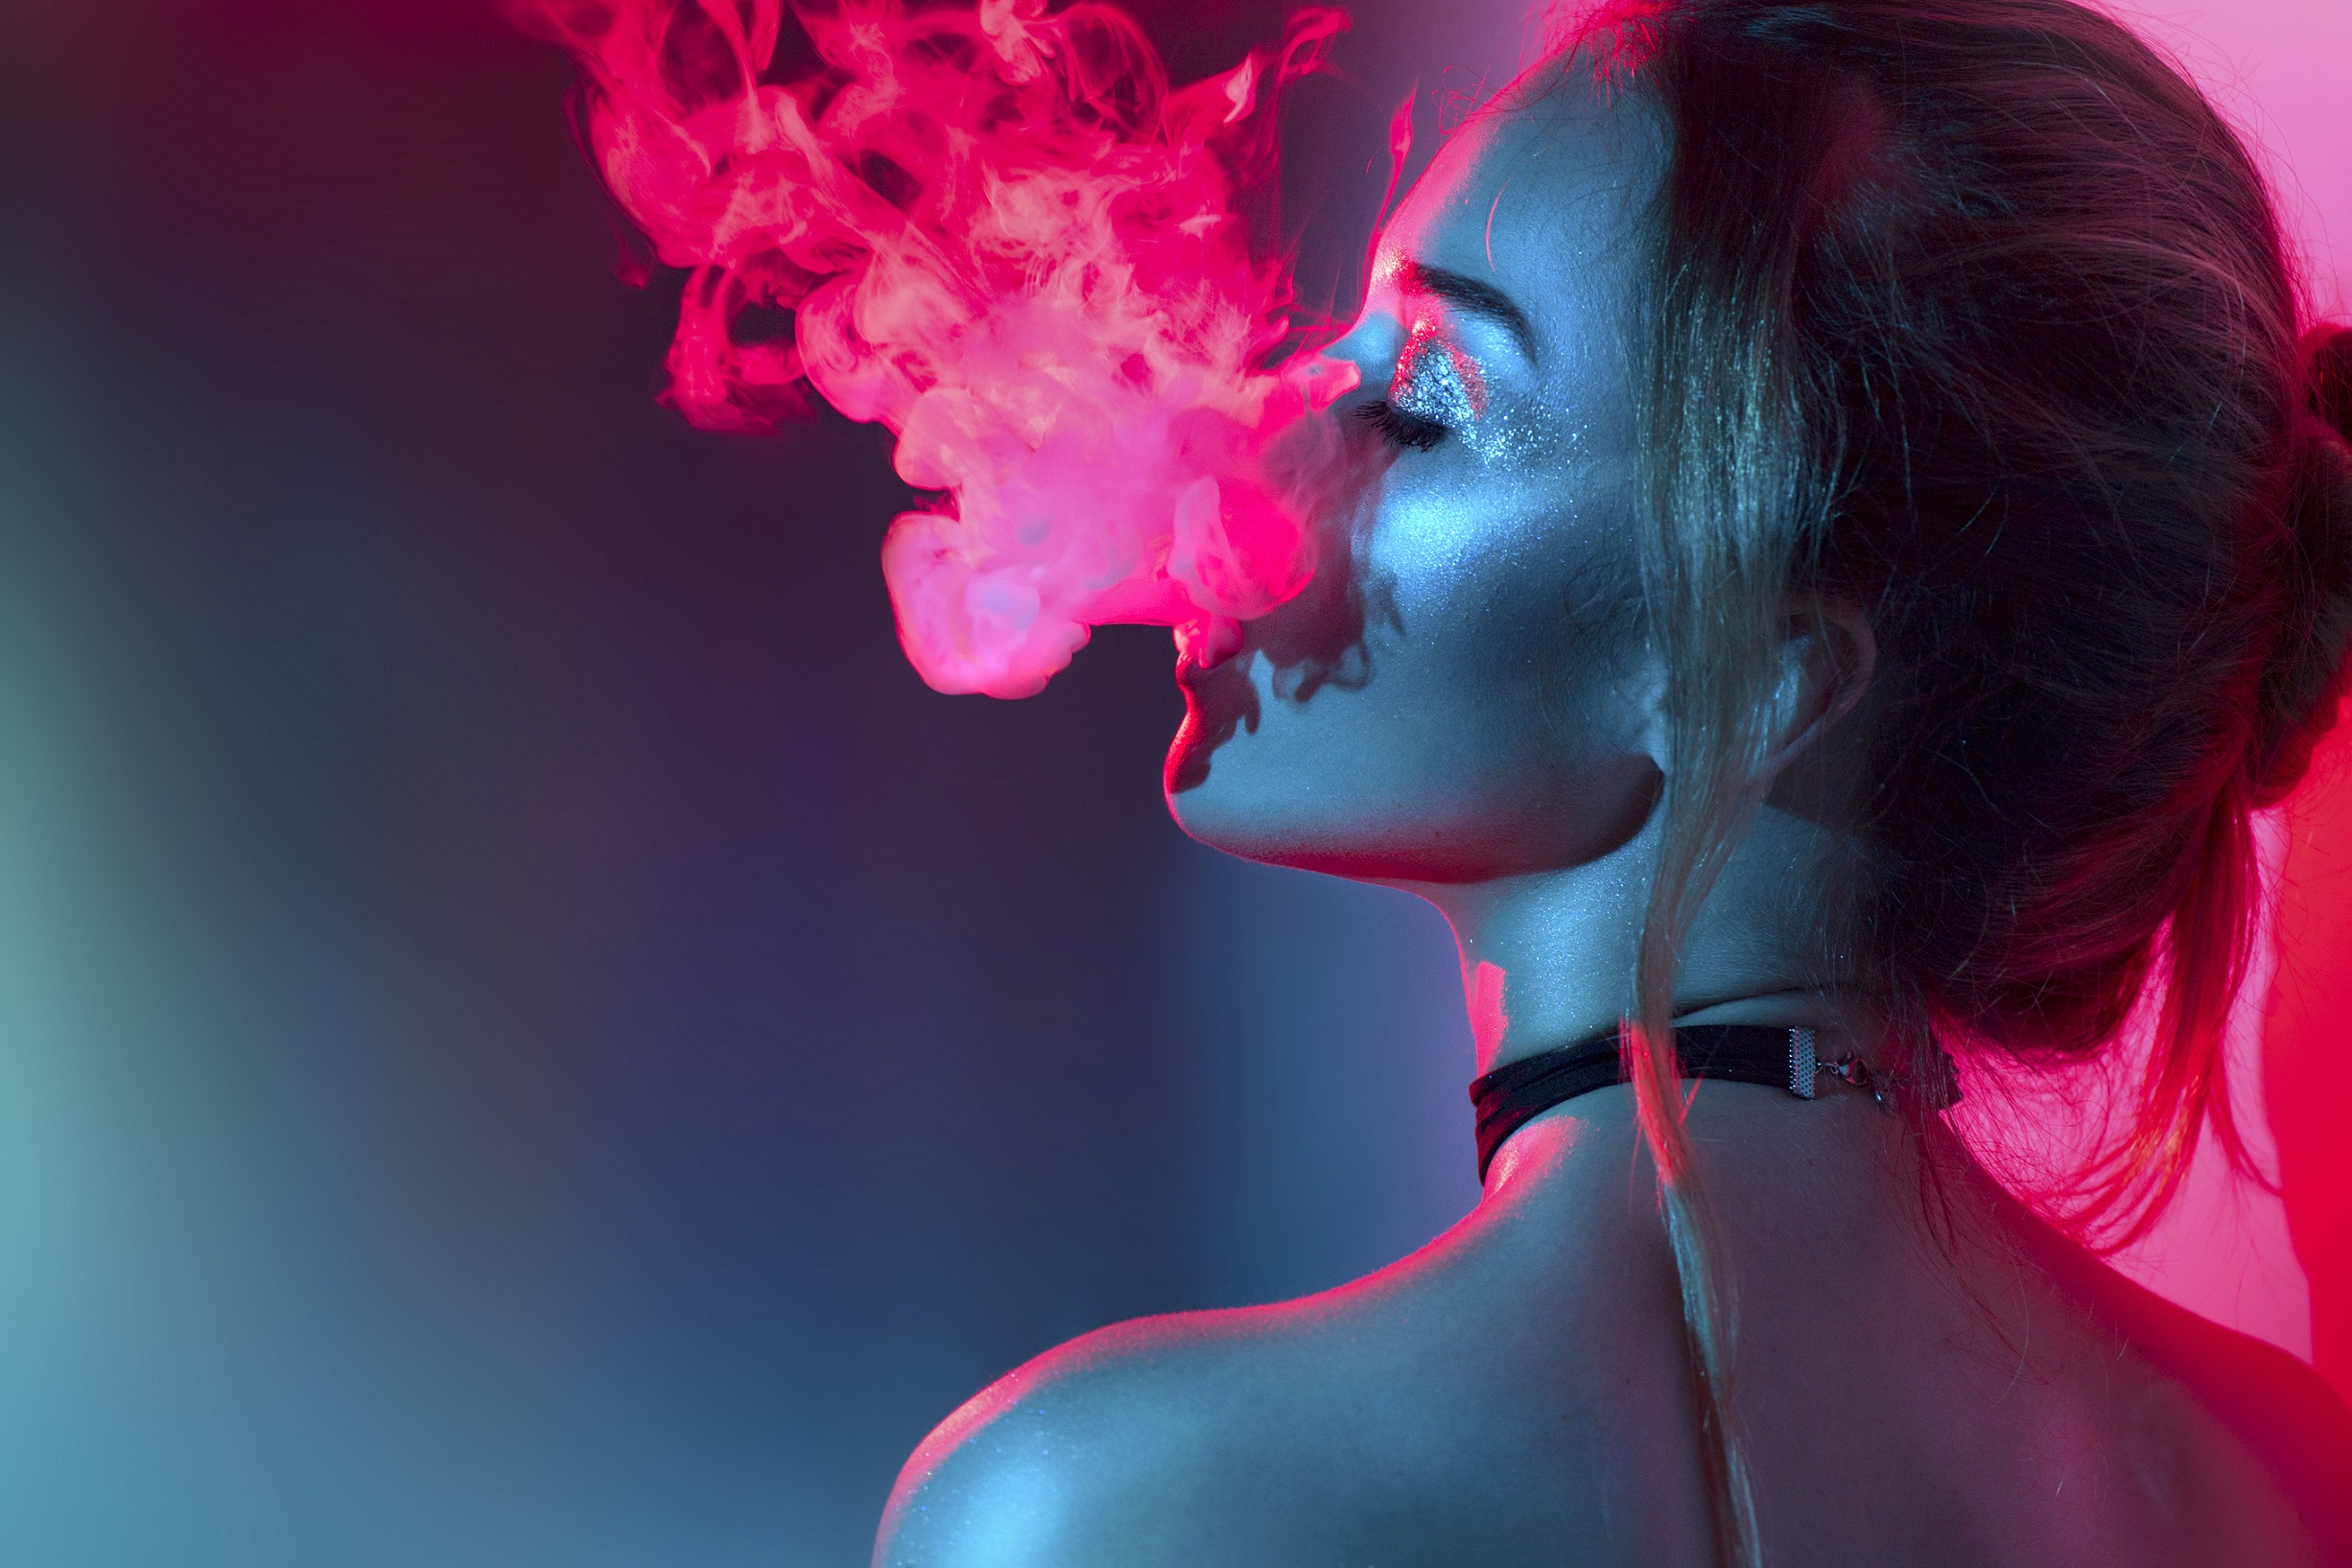 girl vaping photo at night club vaping